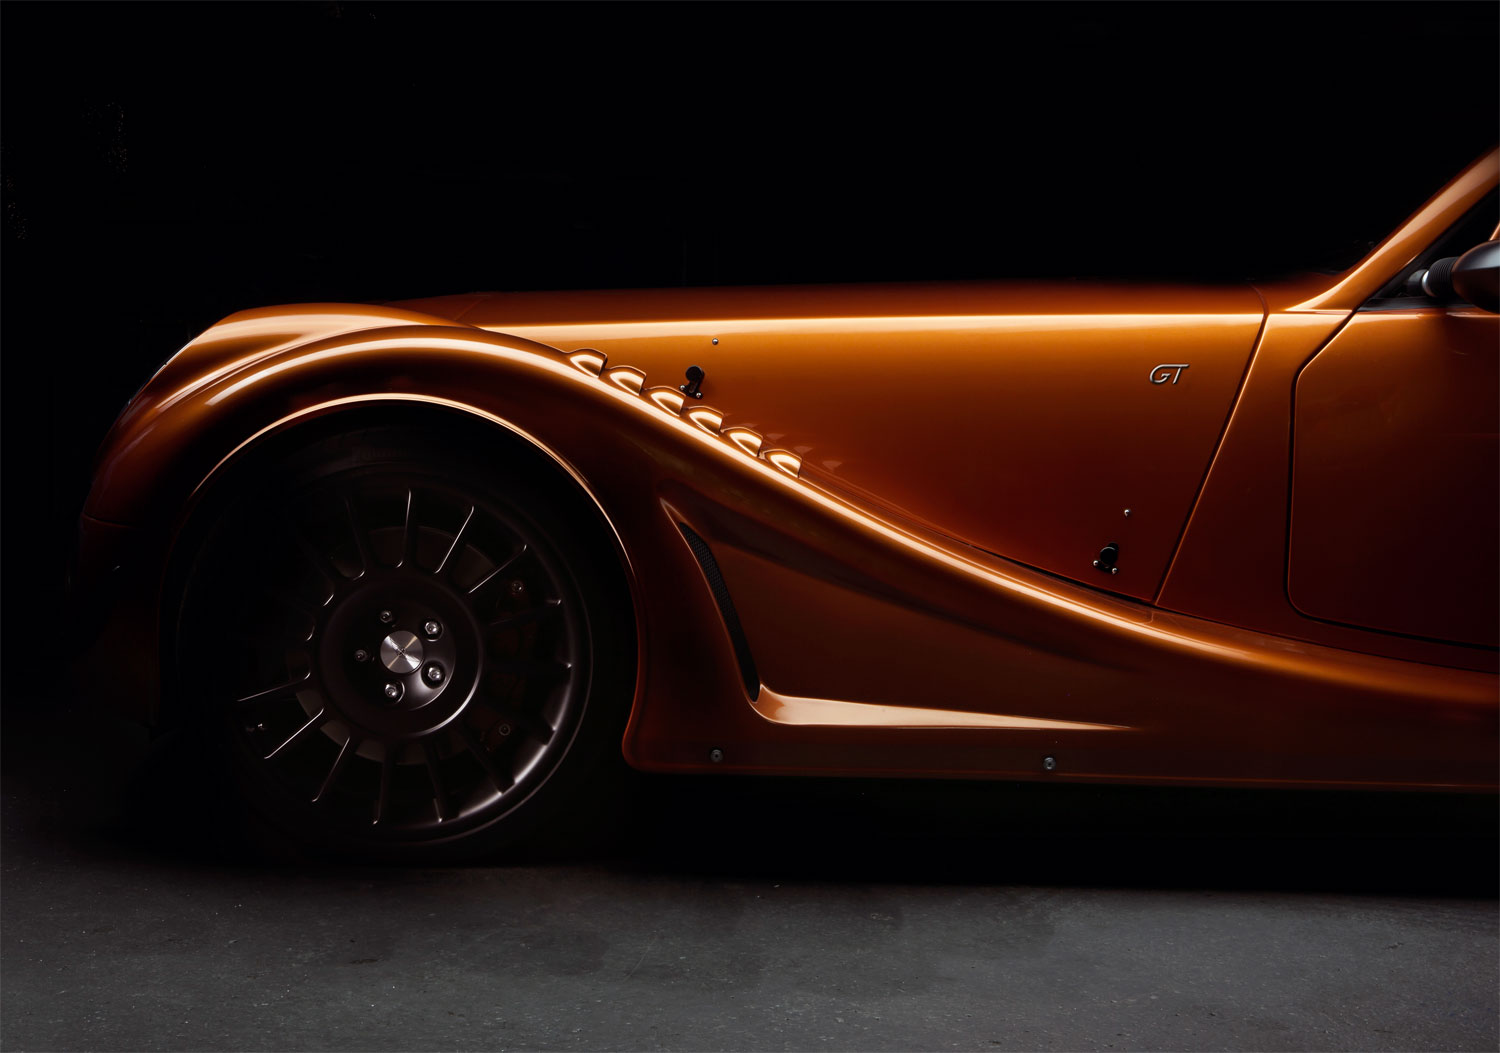 Morgan's Aero GT - Classic Looks Coupled with a lot of Punch